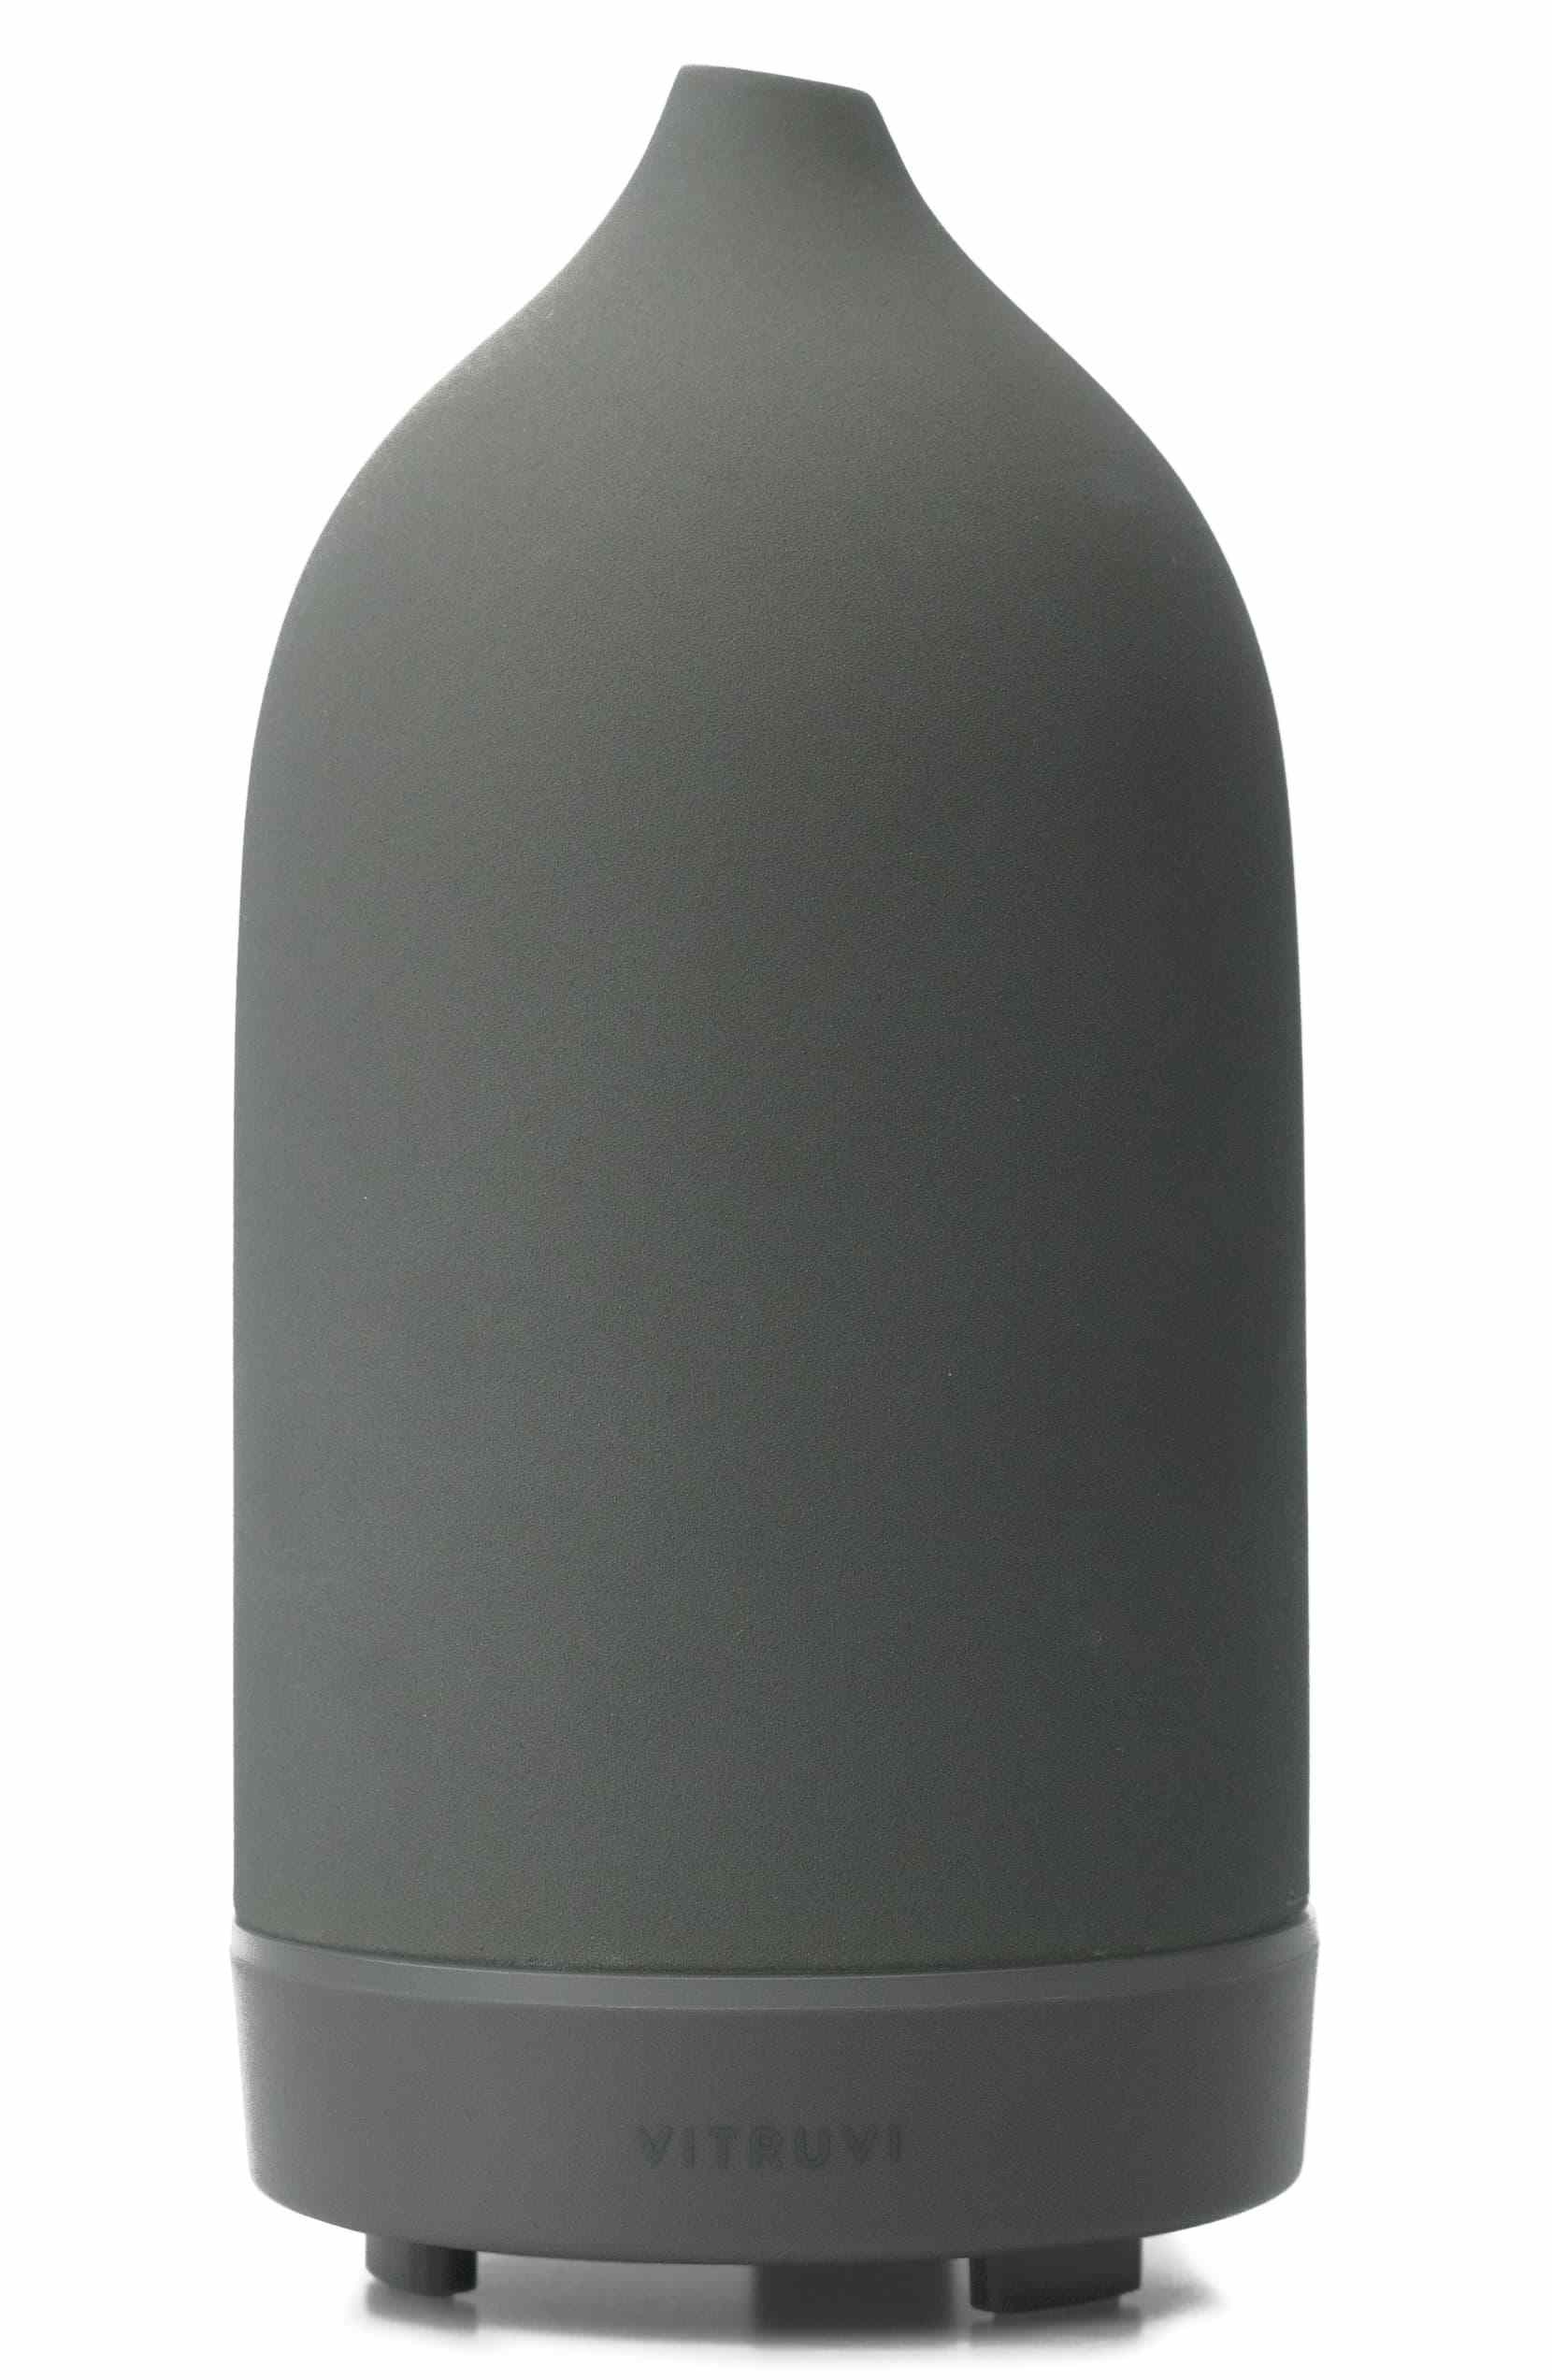 Porcelain Essential Oil Diffuser